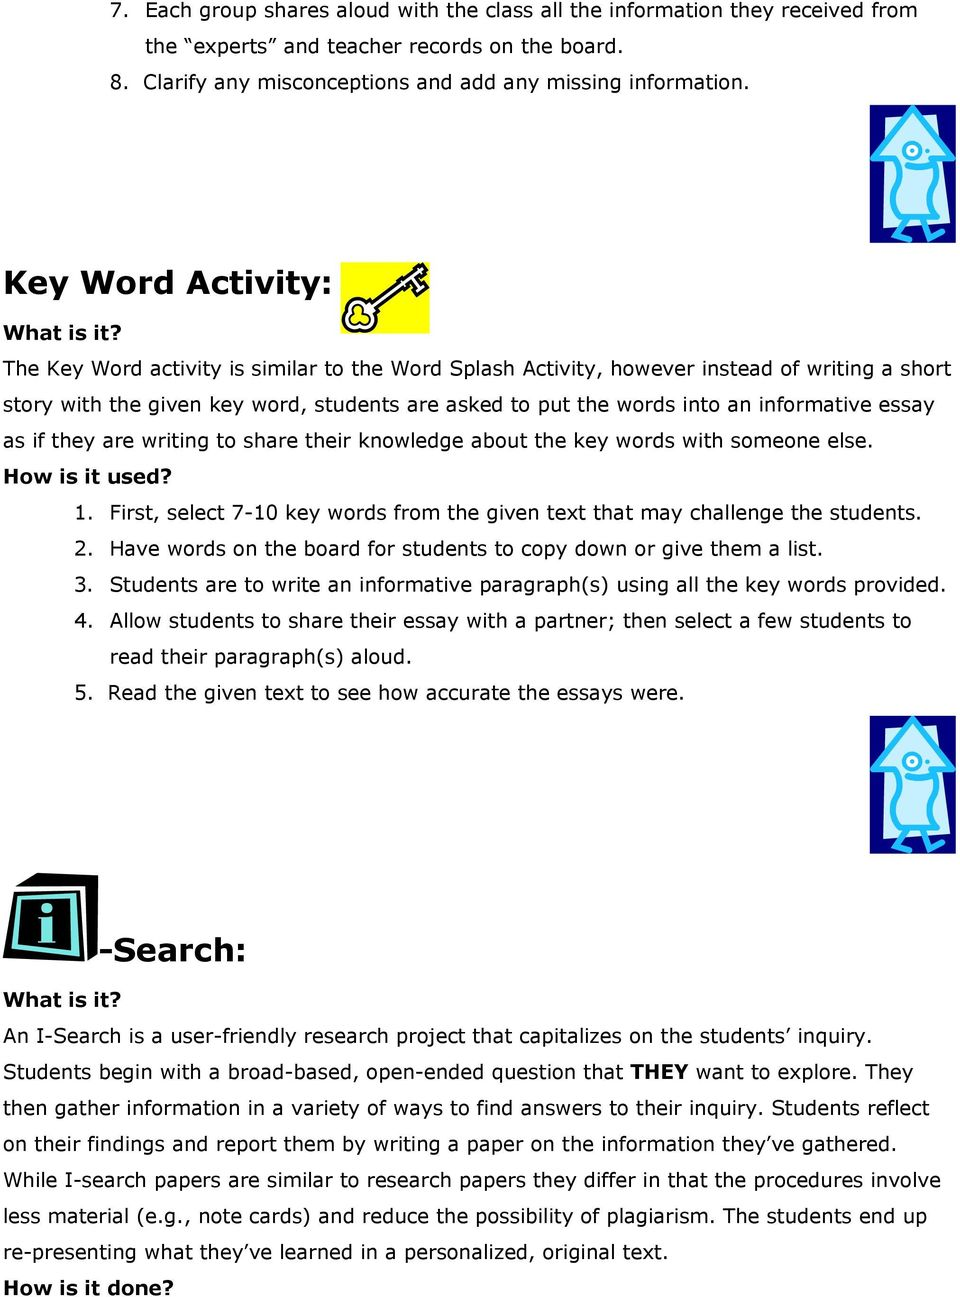 informative essay as if they are writing to share their knowledge about the key words with someone else. 1. First, select 7-10 key words from the given text that may challenge the students. 2.